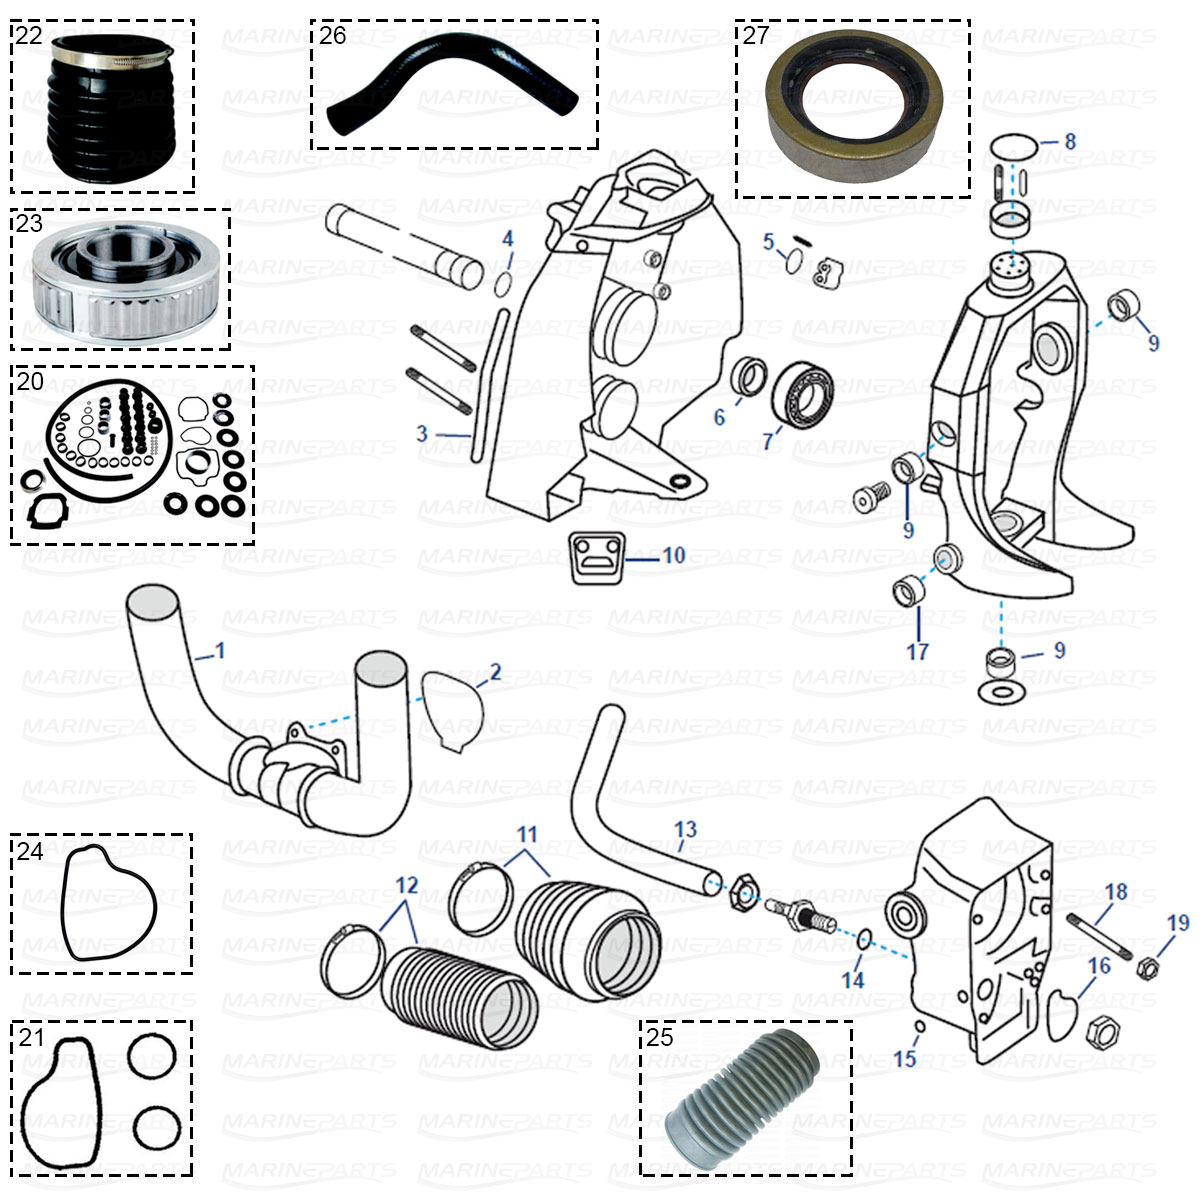 hight resolution of transom parts for volvo penta sx 1994 2006